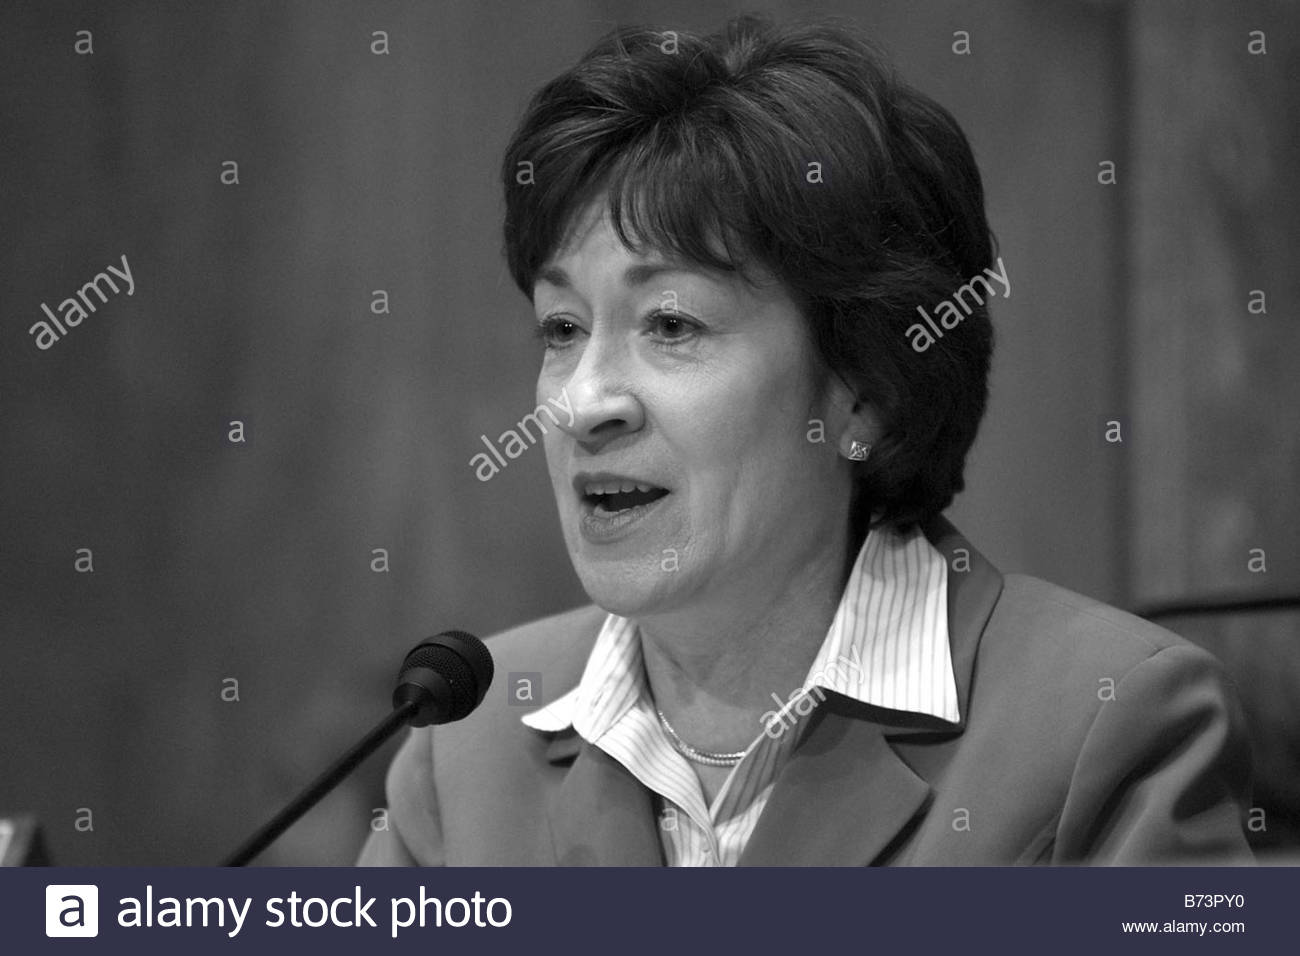 4 7 04 POSTAL SERVICE RESTRUCTURING Chairman Susan Collins R Maine during the Senate Governmental Affairs Committee - Stock Image